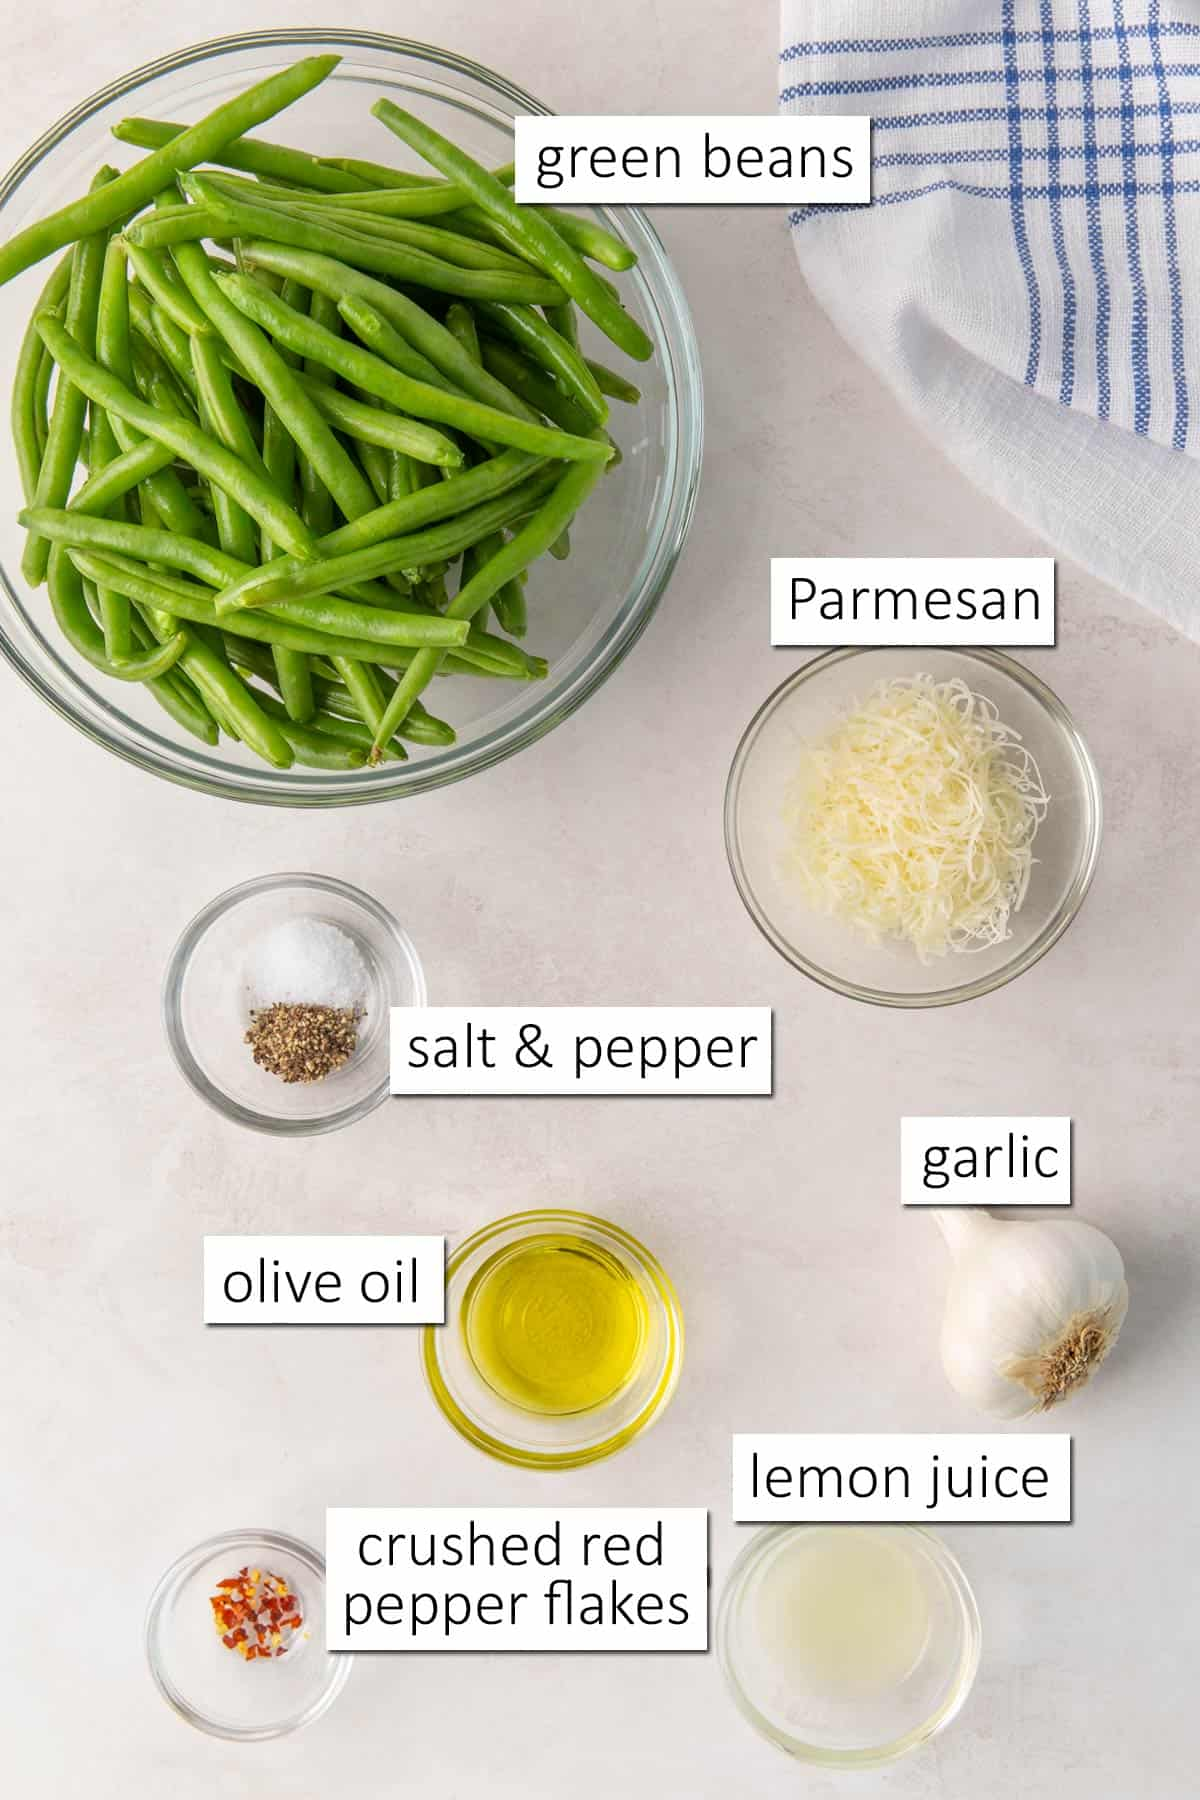 Overhead view of ingredients for sautéed green beans with garlic and Parmesan.